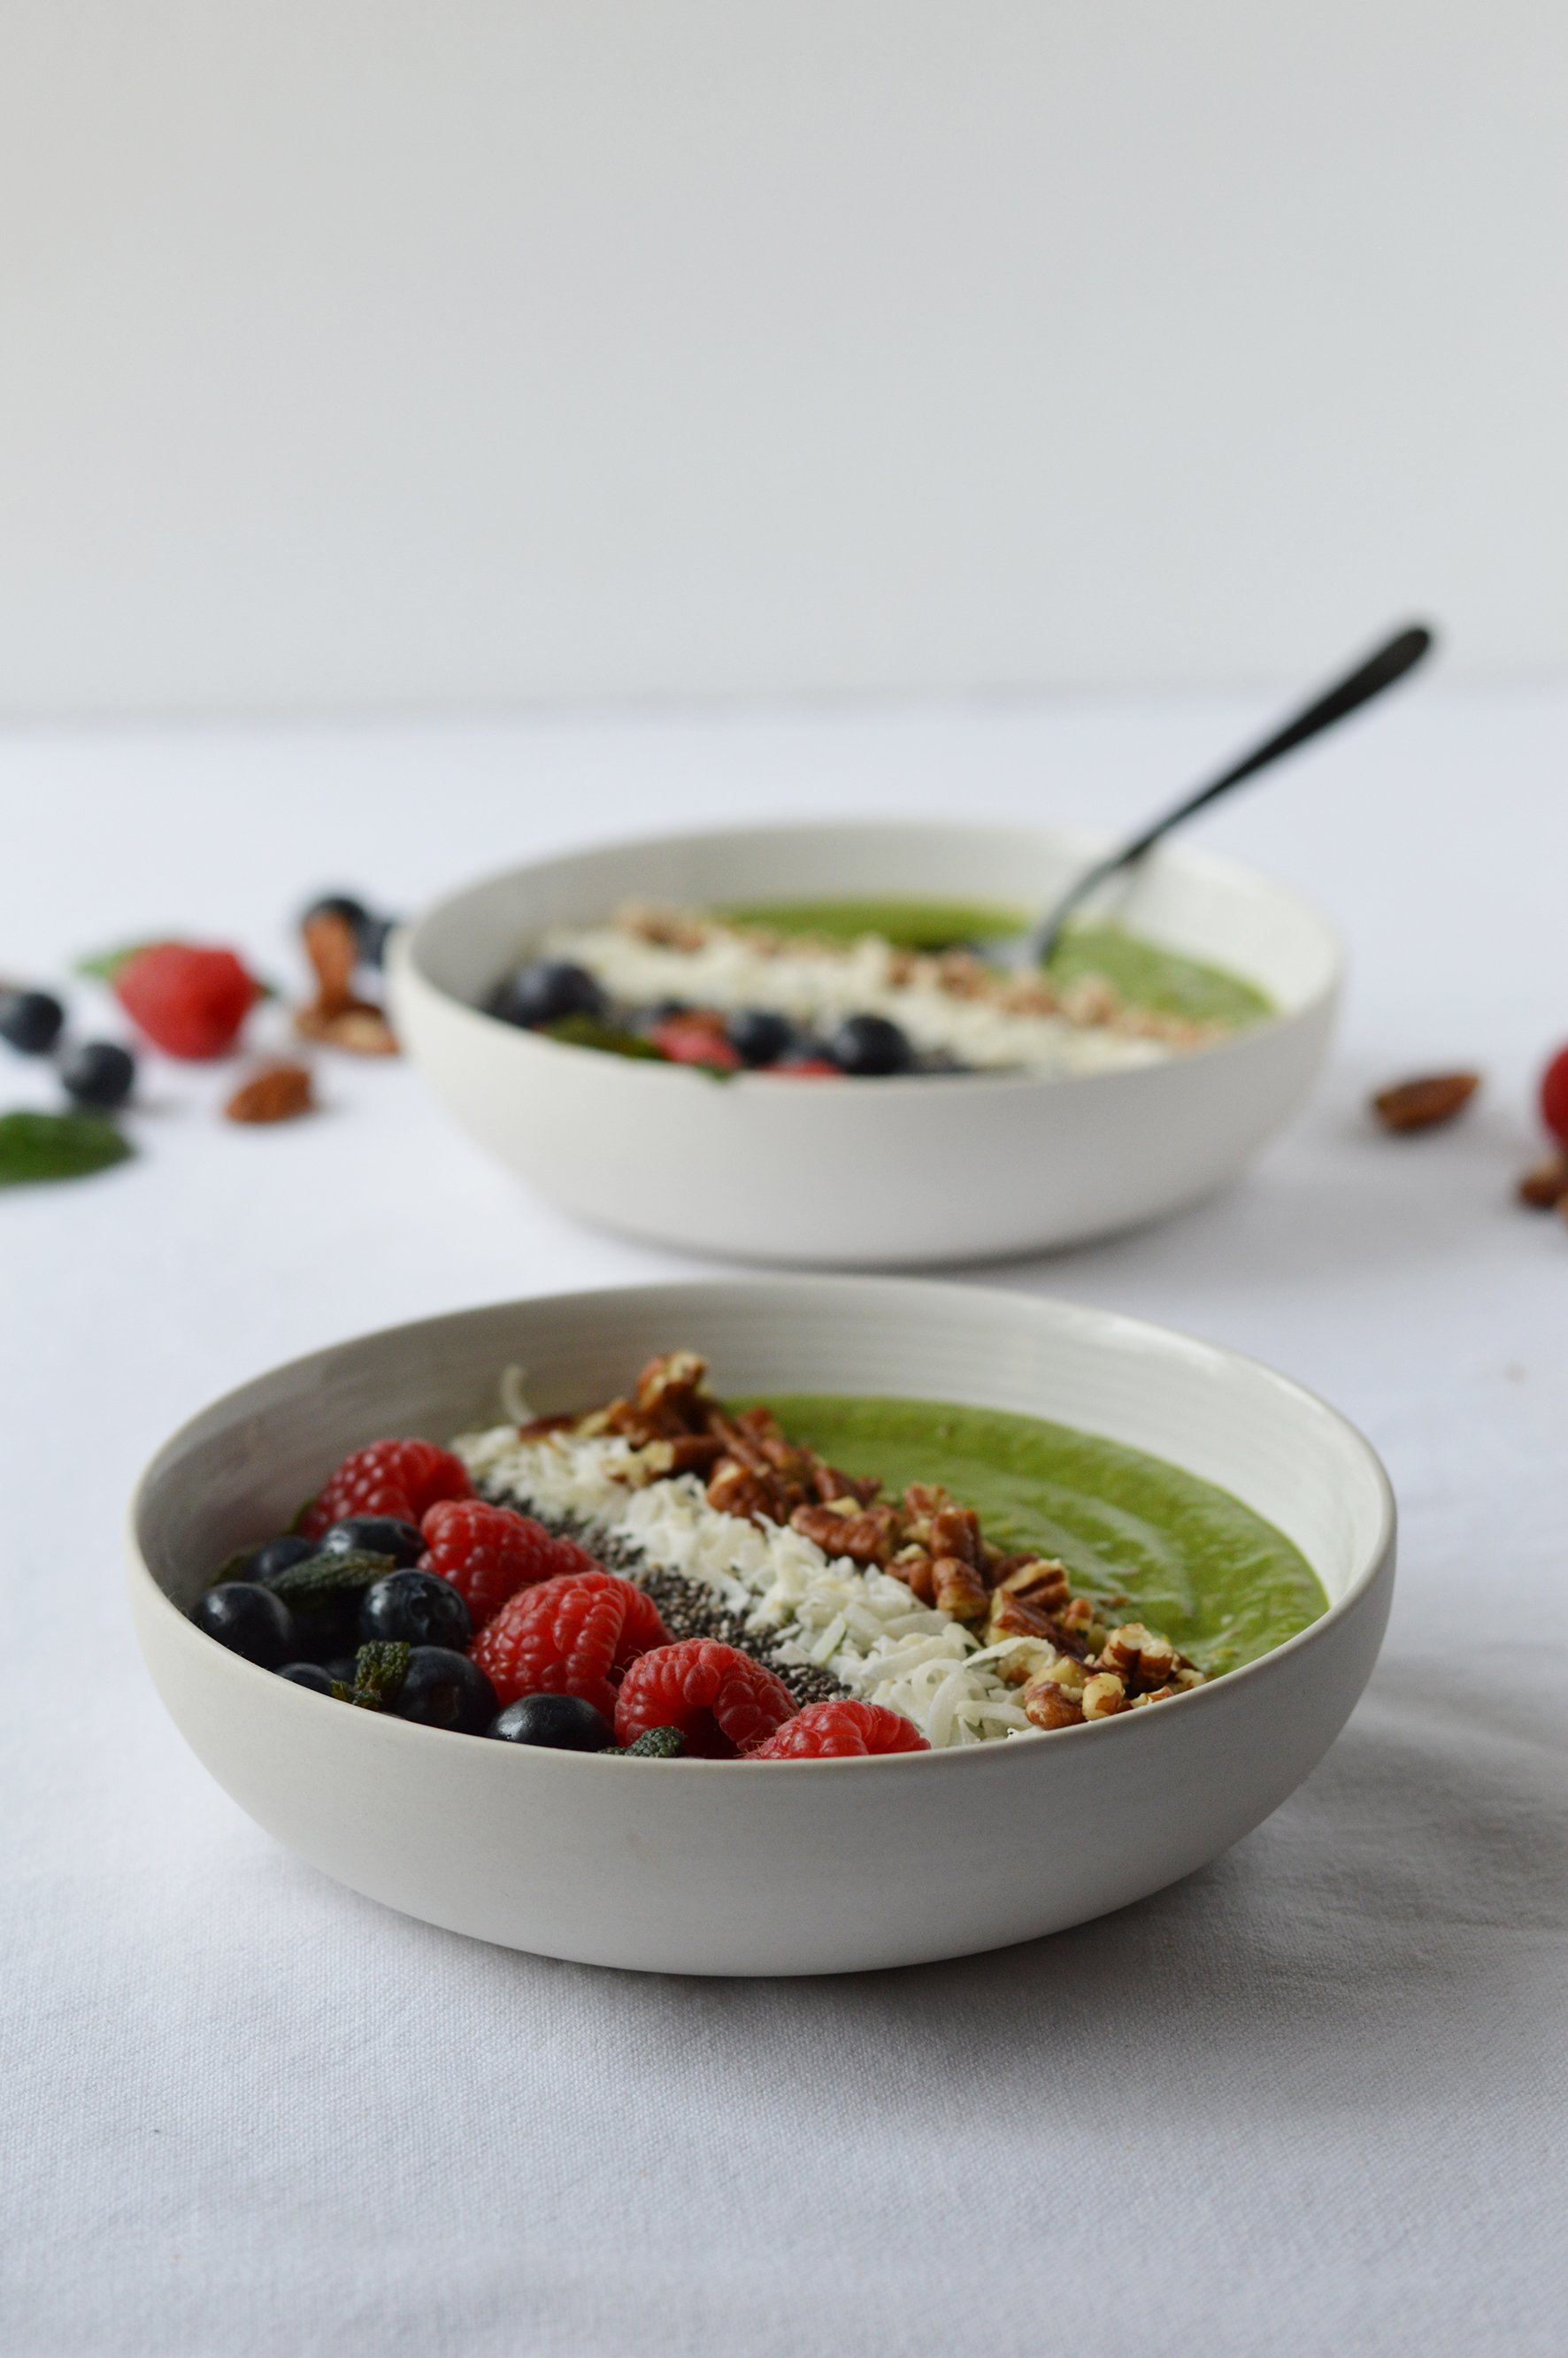 Green smoothie bowl - Plus une miette